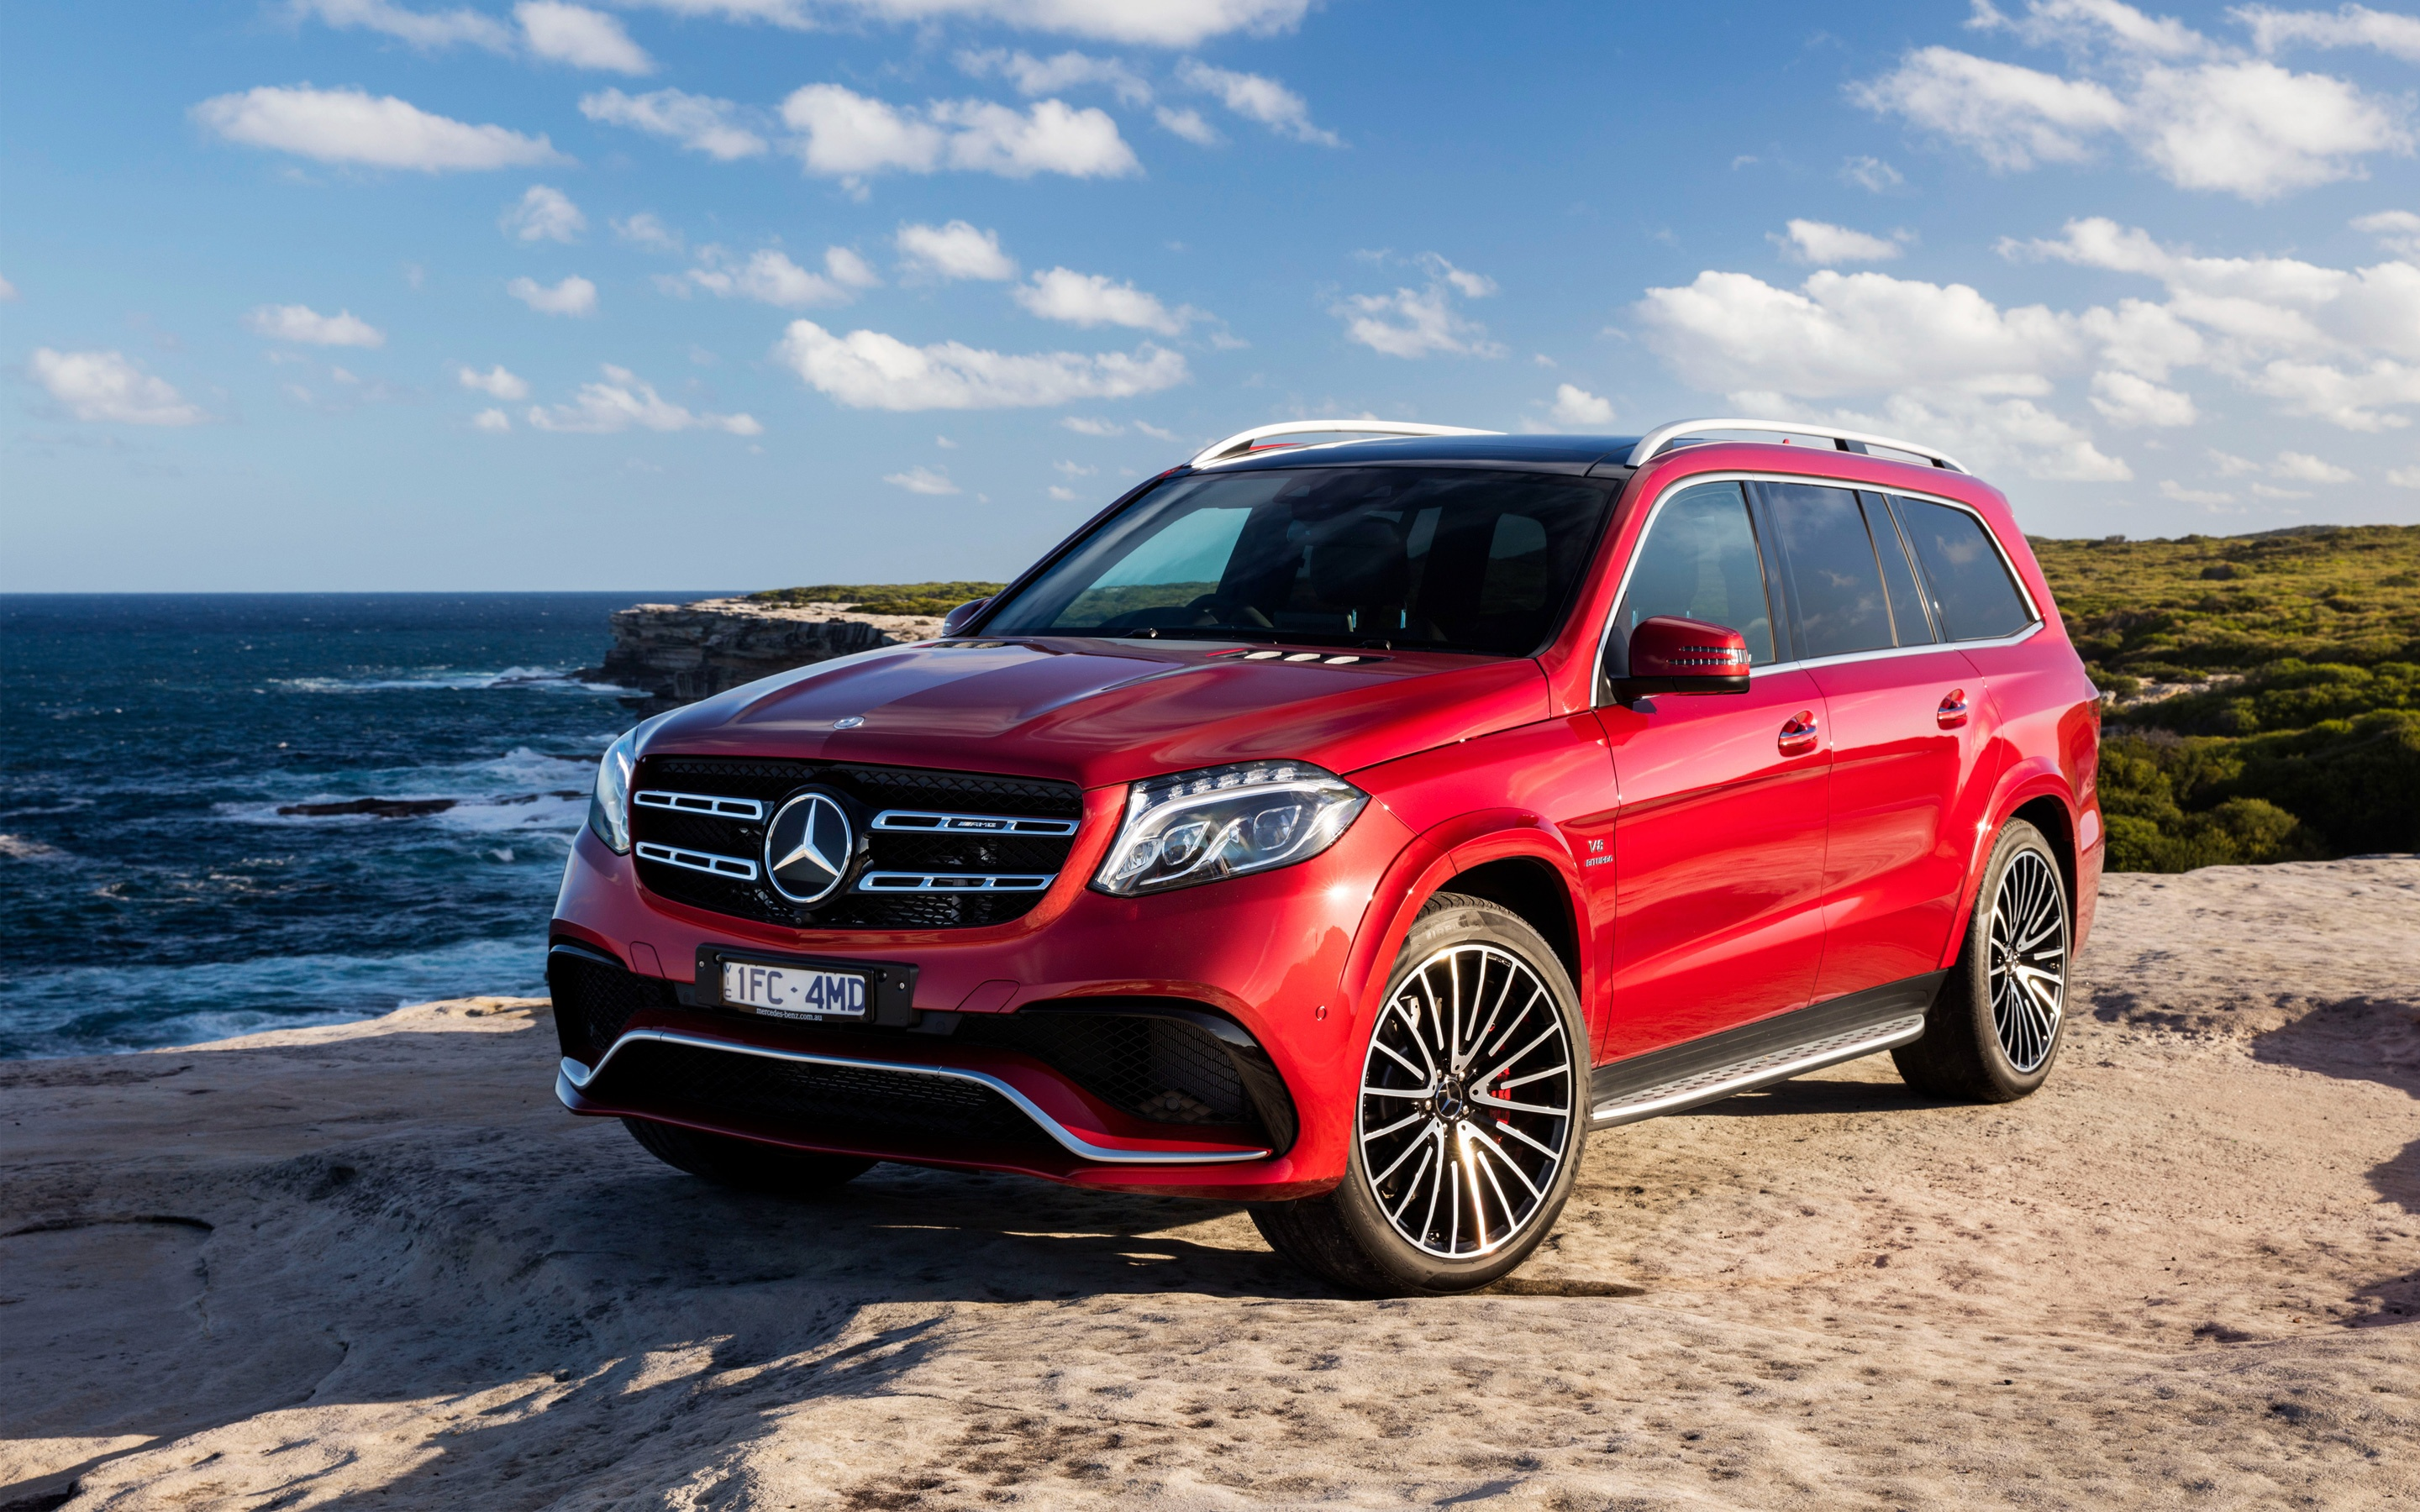 2016 AMG Mercedes Benz GLS Class Wallpapers in format for free